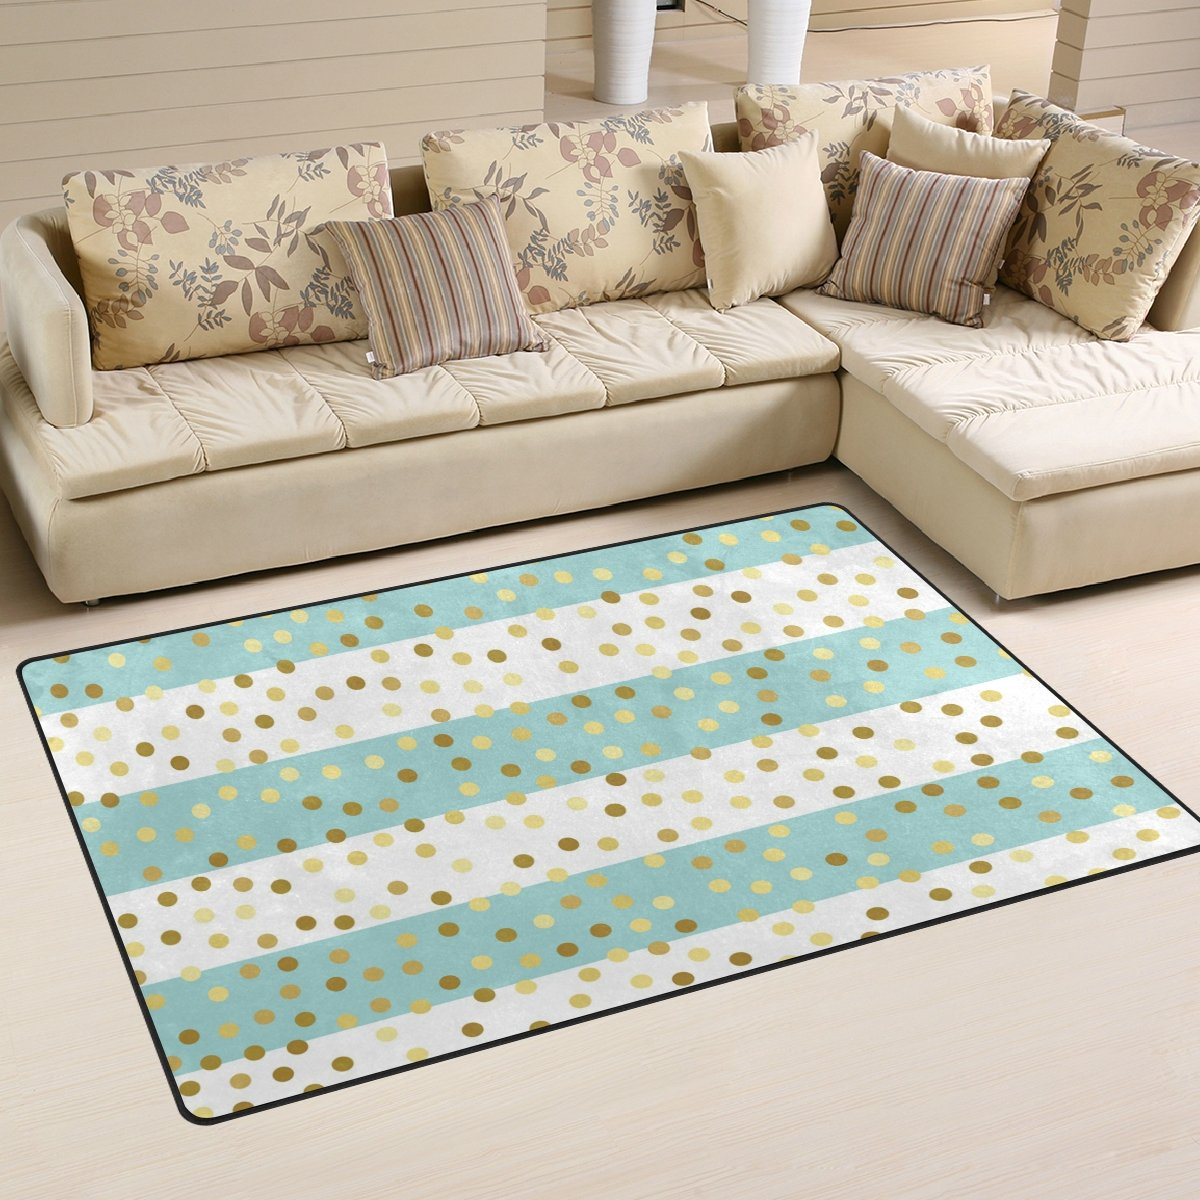 Naanle Mint Green Stripe Non Slip Area Rug for Living Dinning Room Bedroom Kitchen, 50 x 80 cm(1.7' x 2.6' ft), Golden Glitter Nursery Rug Floor Carpet Yoga Mat